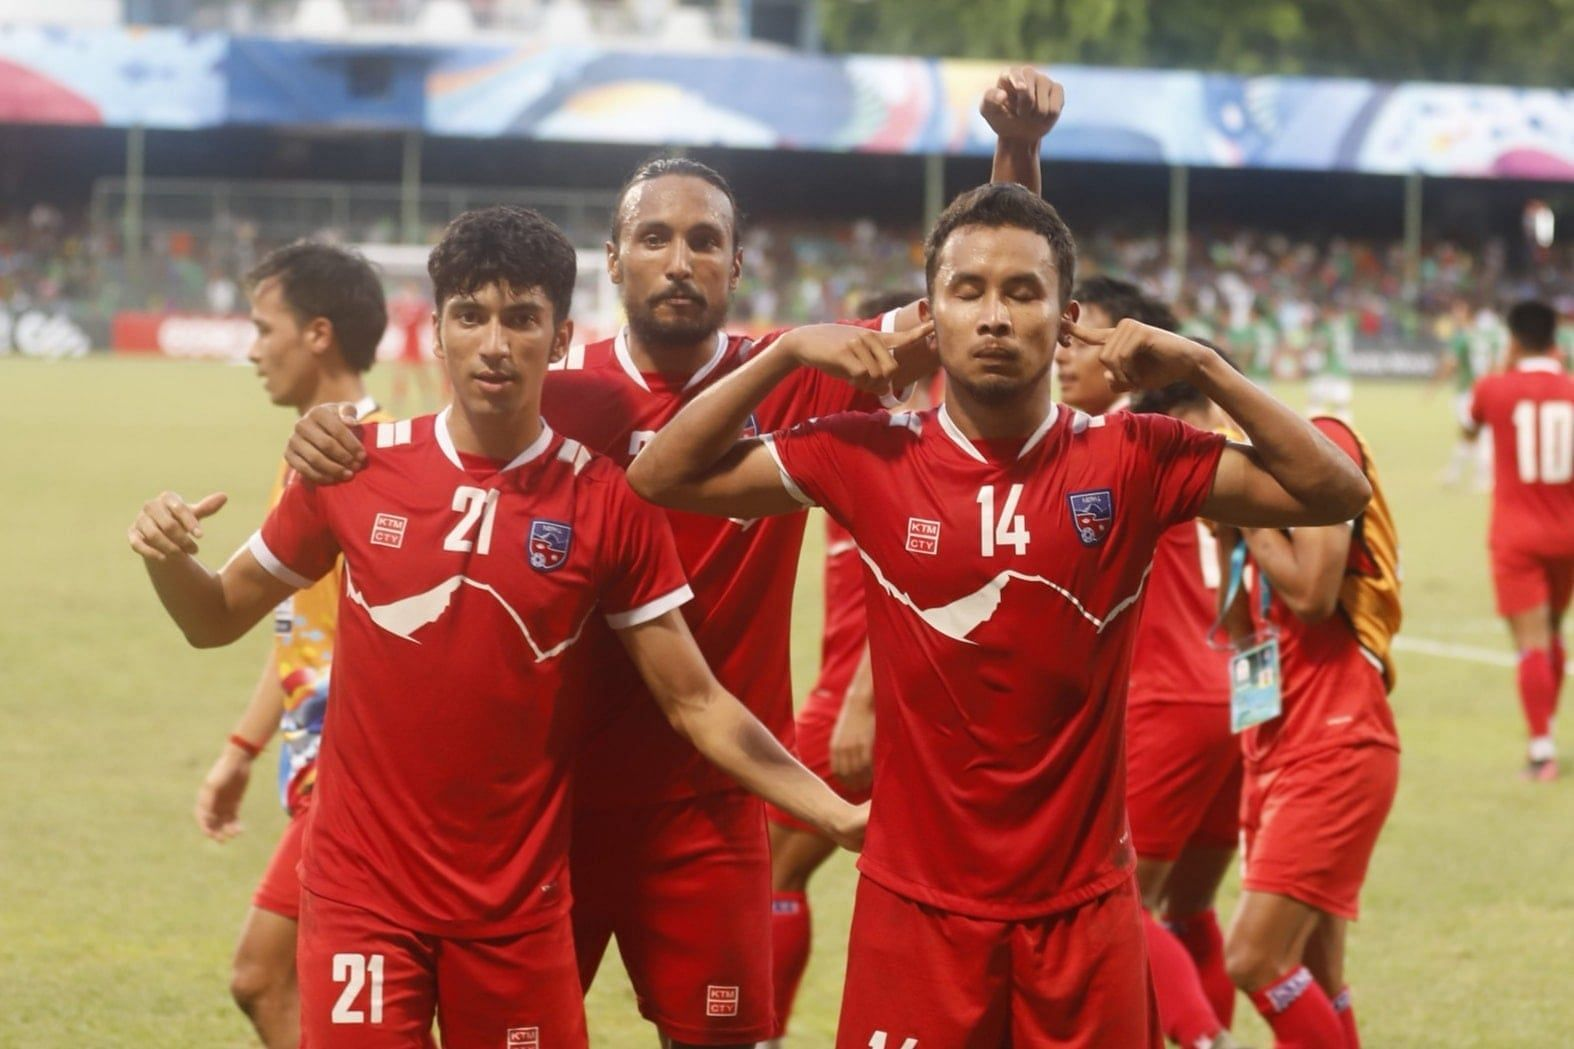 Nepal drew 1-1 with Bangladesh to advance to their first ever SAFF Championship final. (Image: SAFF)